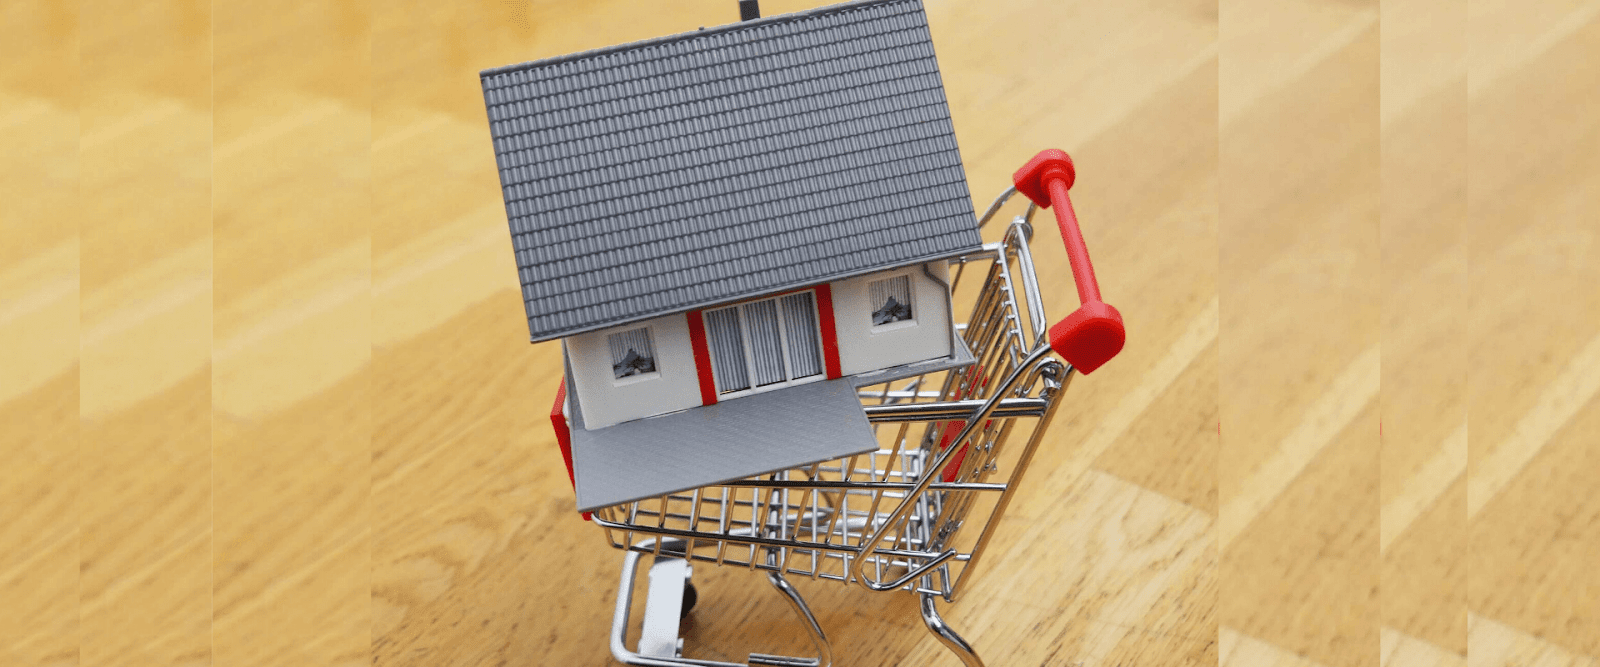 buying a house before selling current